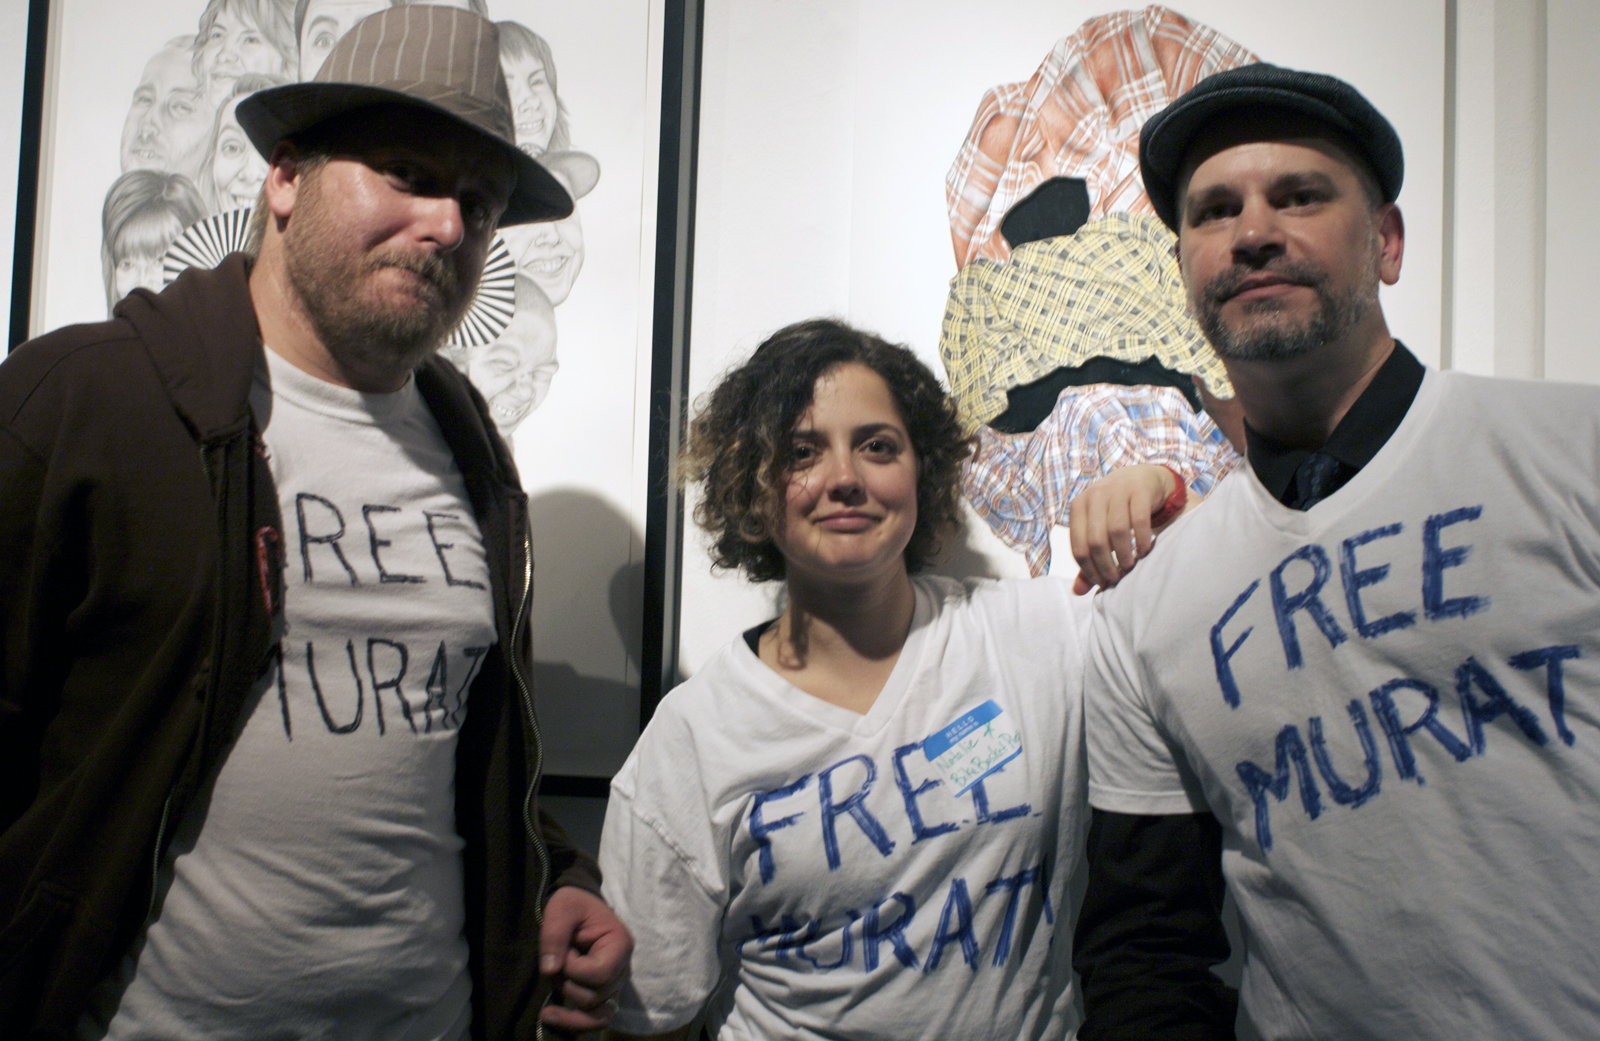 Free Murat, Say Wife and Friends